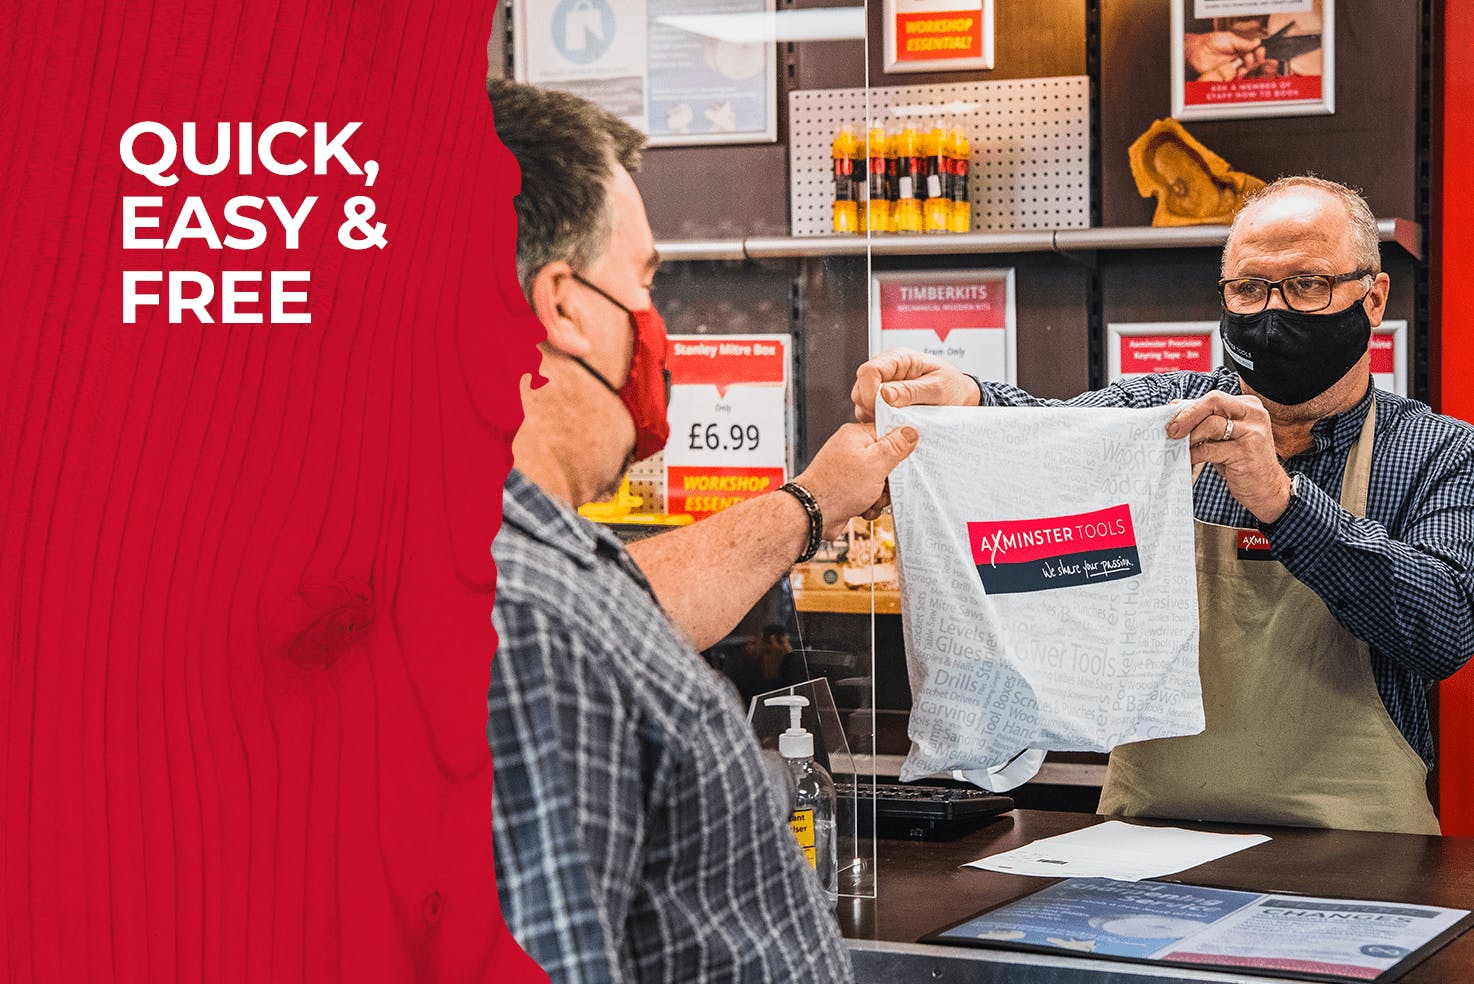 Click & Collect is quick, easy and free